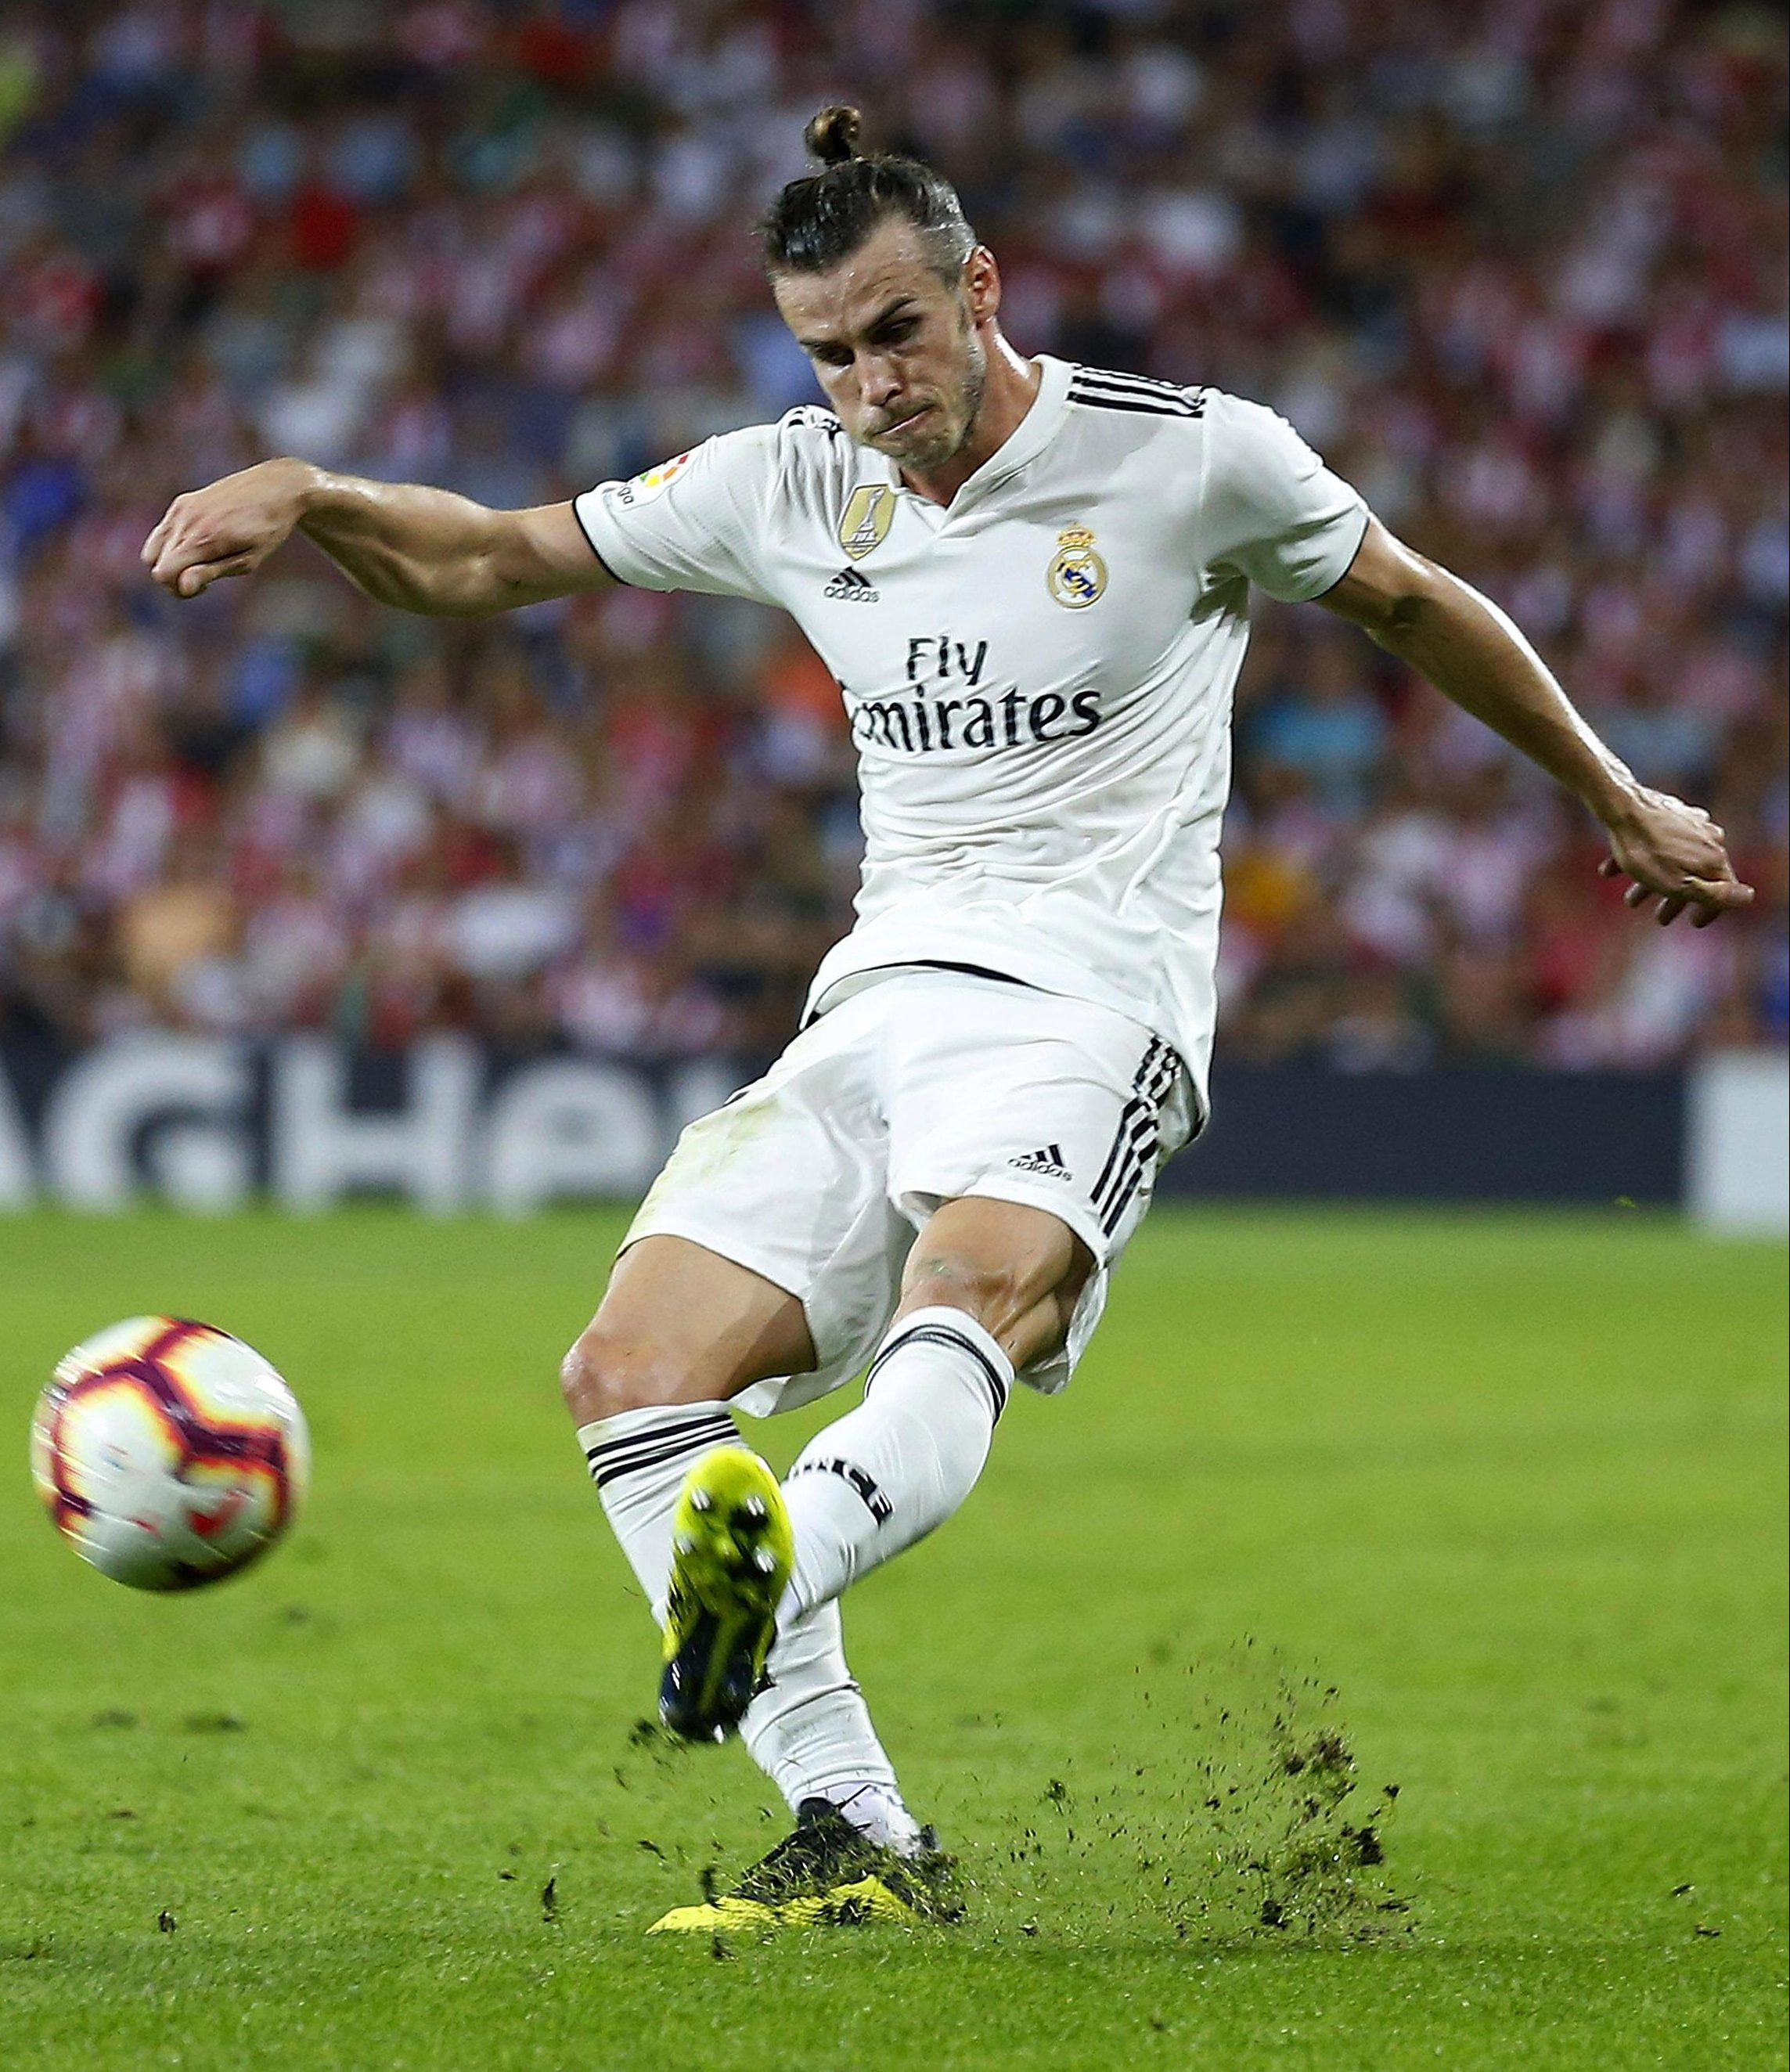 Could this be the season that defines Welshman Gareth Bale as a Real Madrid hero?